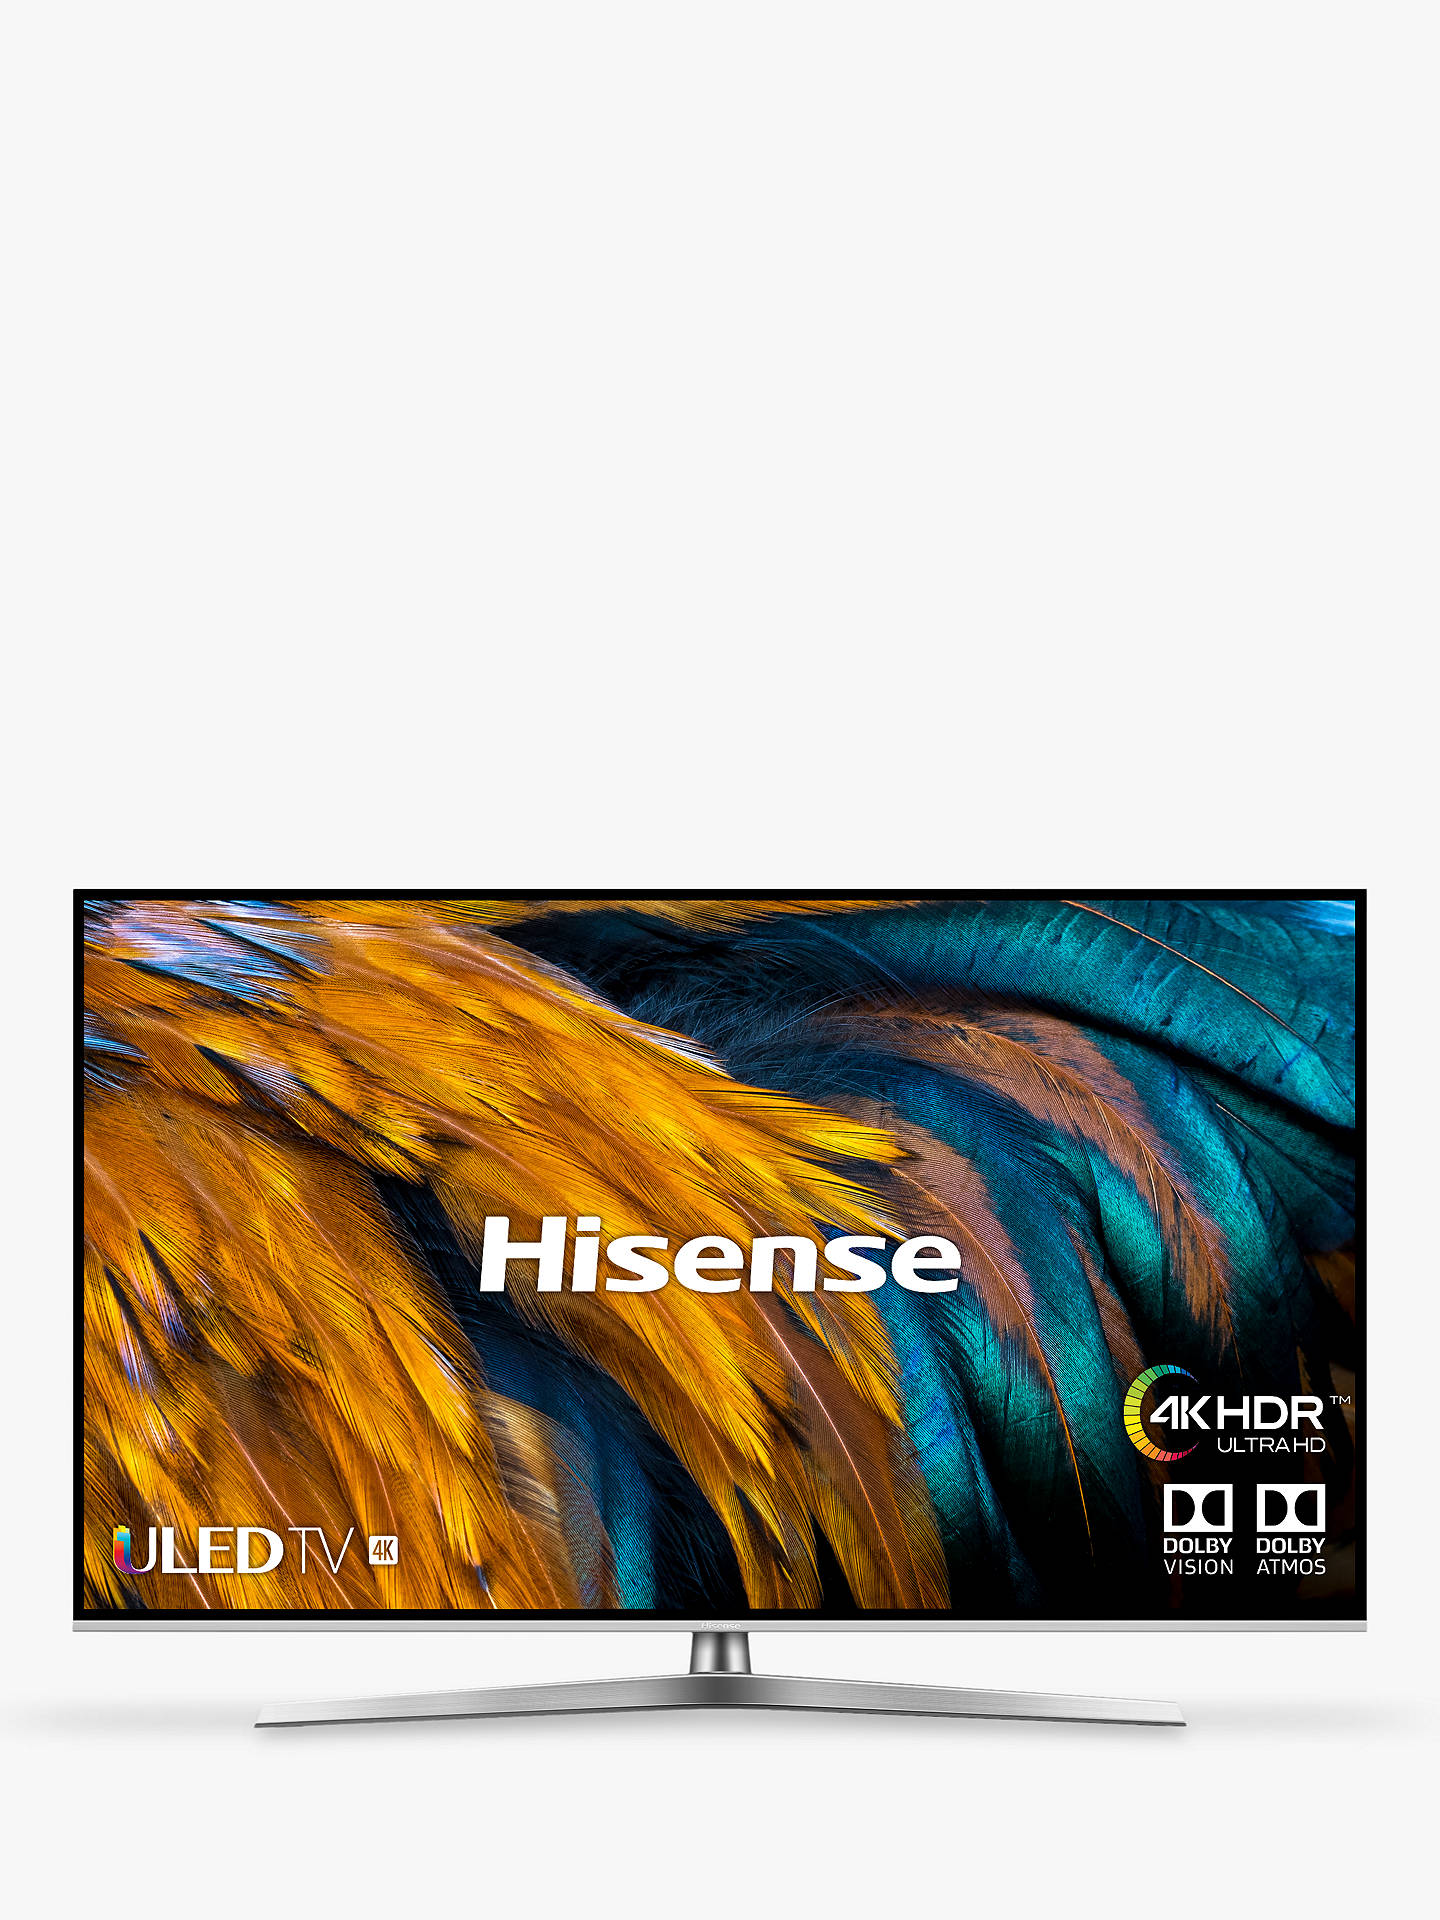 Hisense H65U7BUK (2019) ULED HDR 4K Ultra HD Smart TV, 65